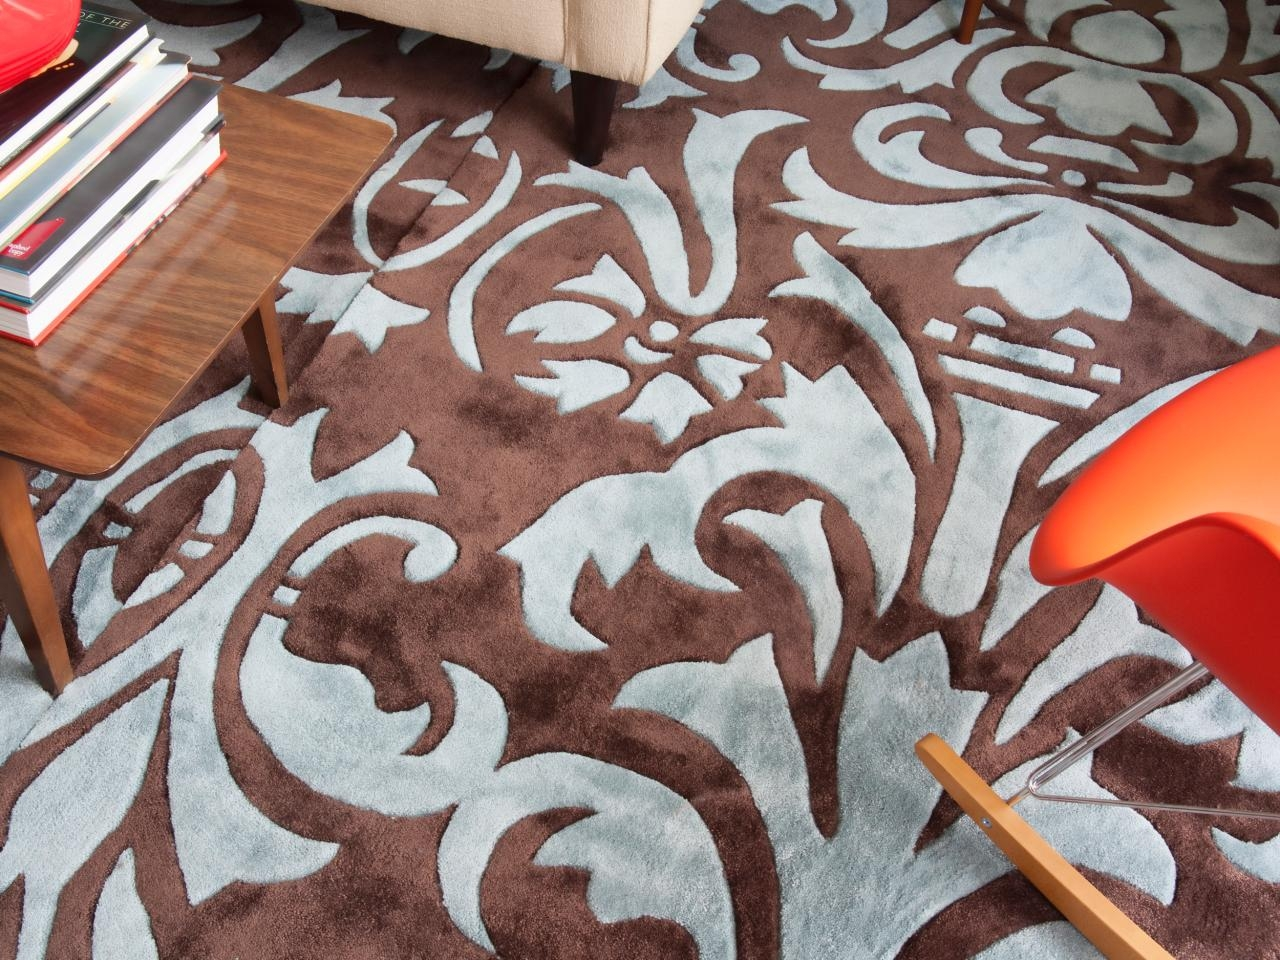 How To Make One Large Custom Area Rug From Several Small Ones Hgtv Within Custom Made Area Rugs (Image 10 of 15)